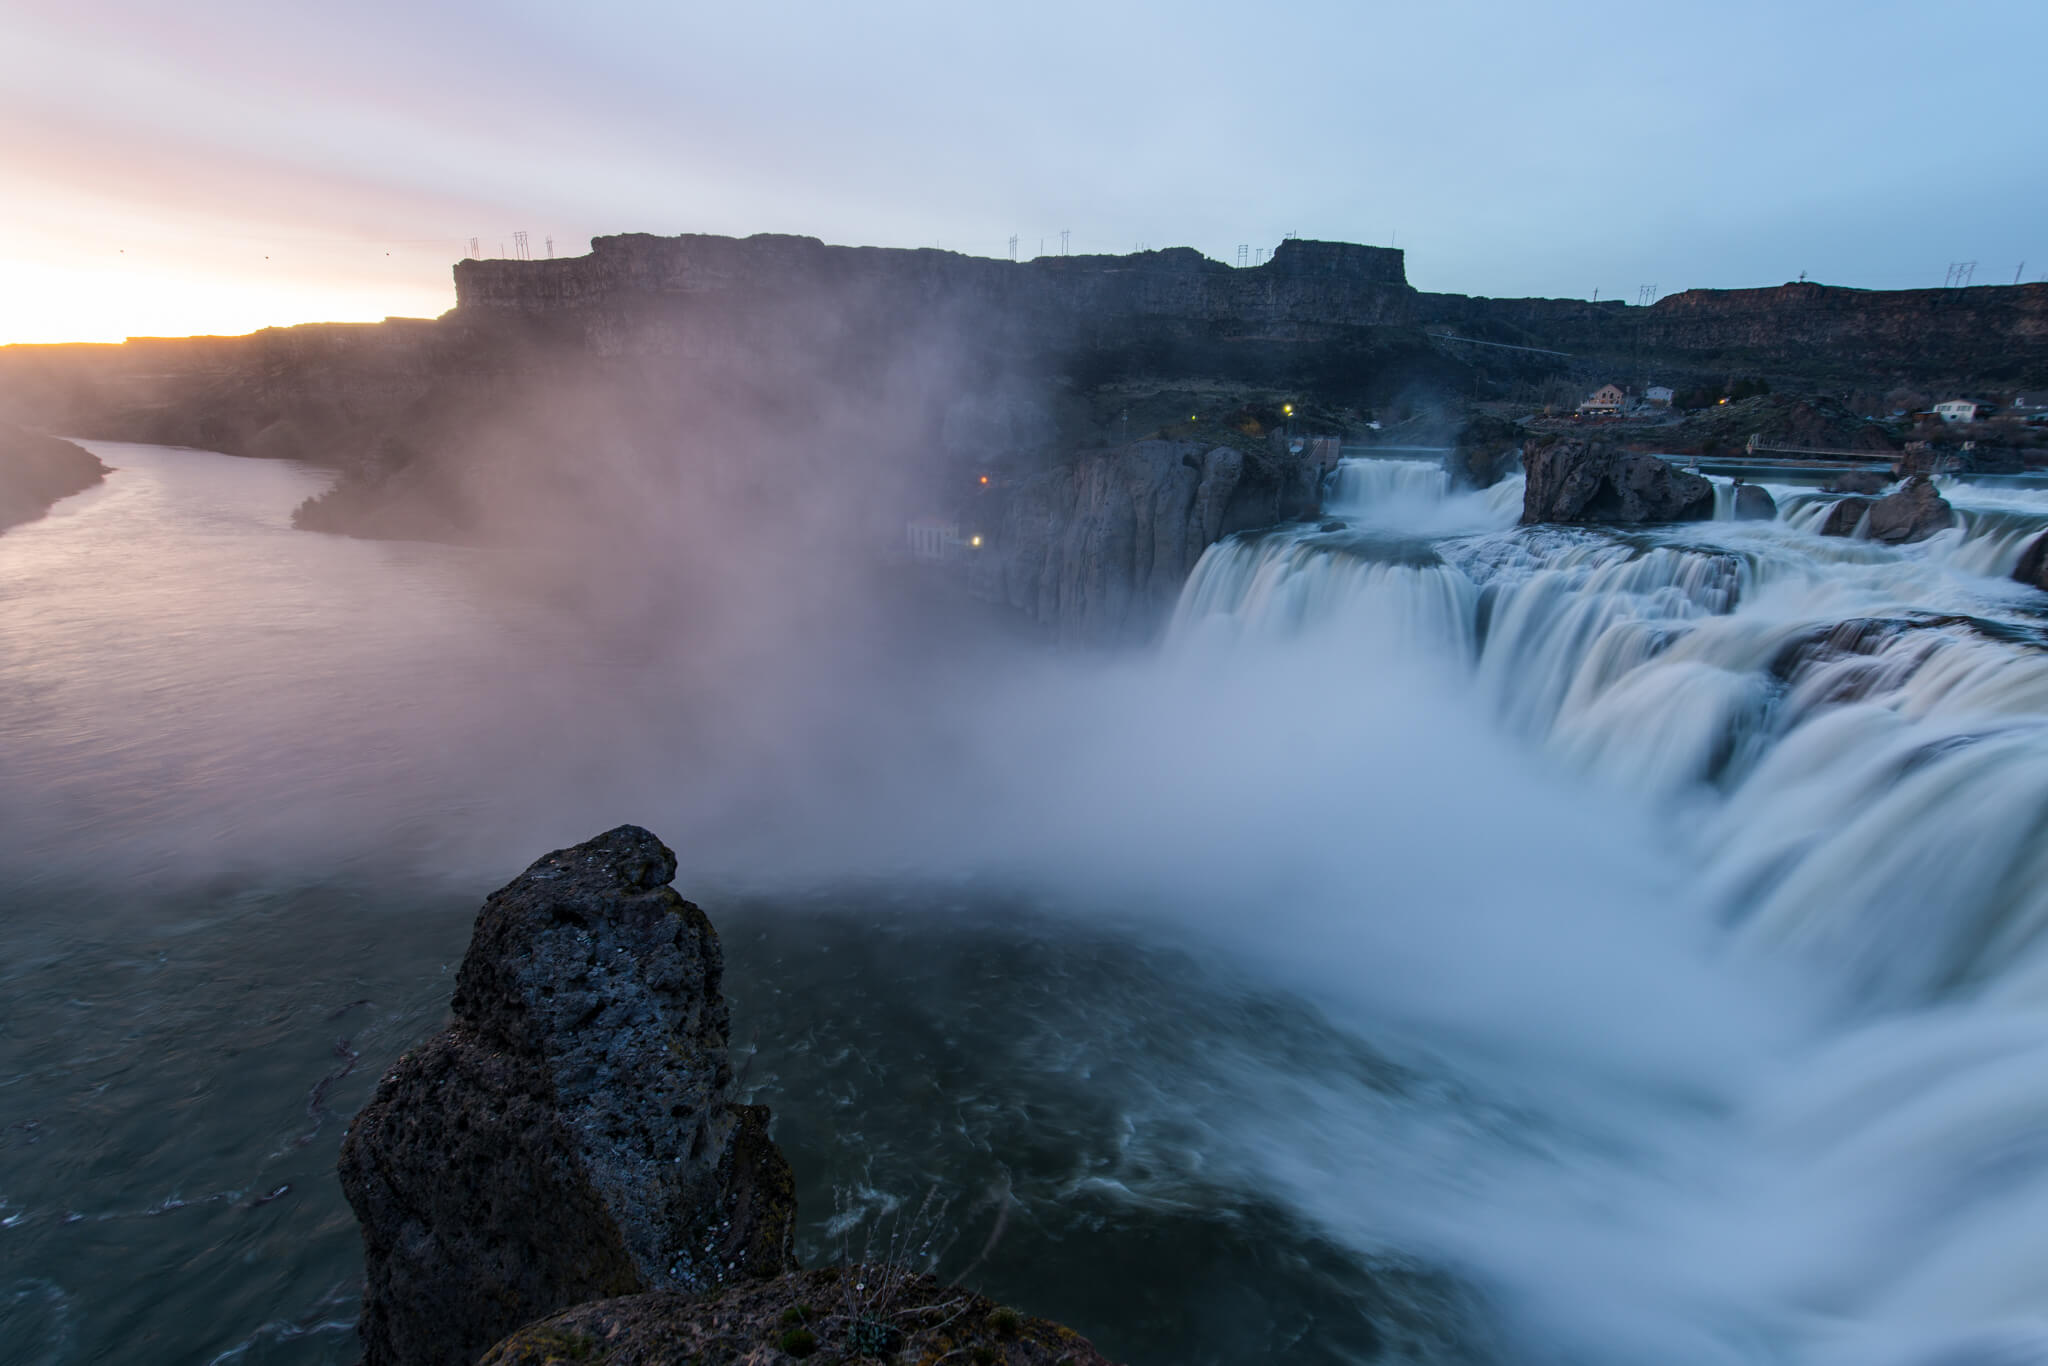 Let Shoshone Falls take your breath away. Photo Credit: Michael Bonocore.